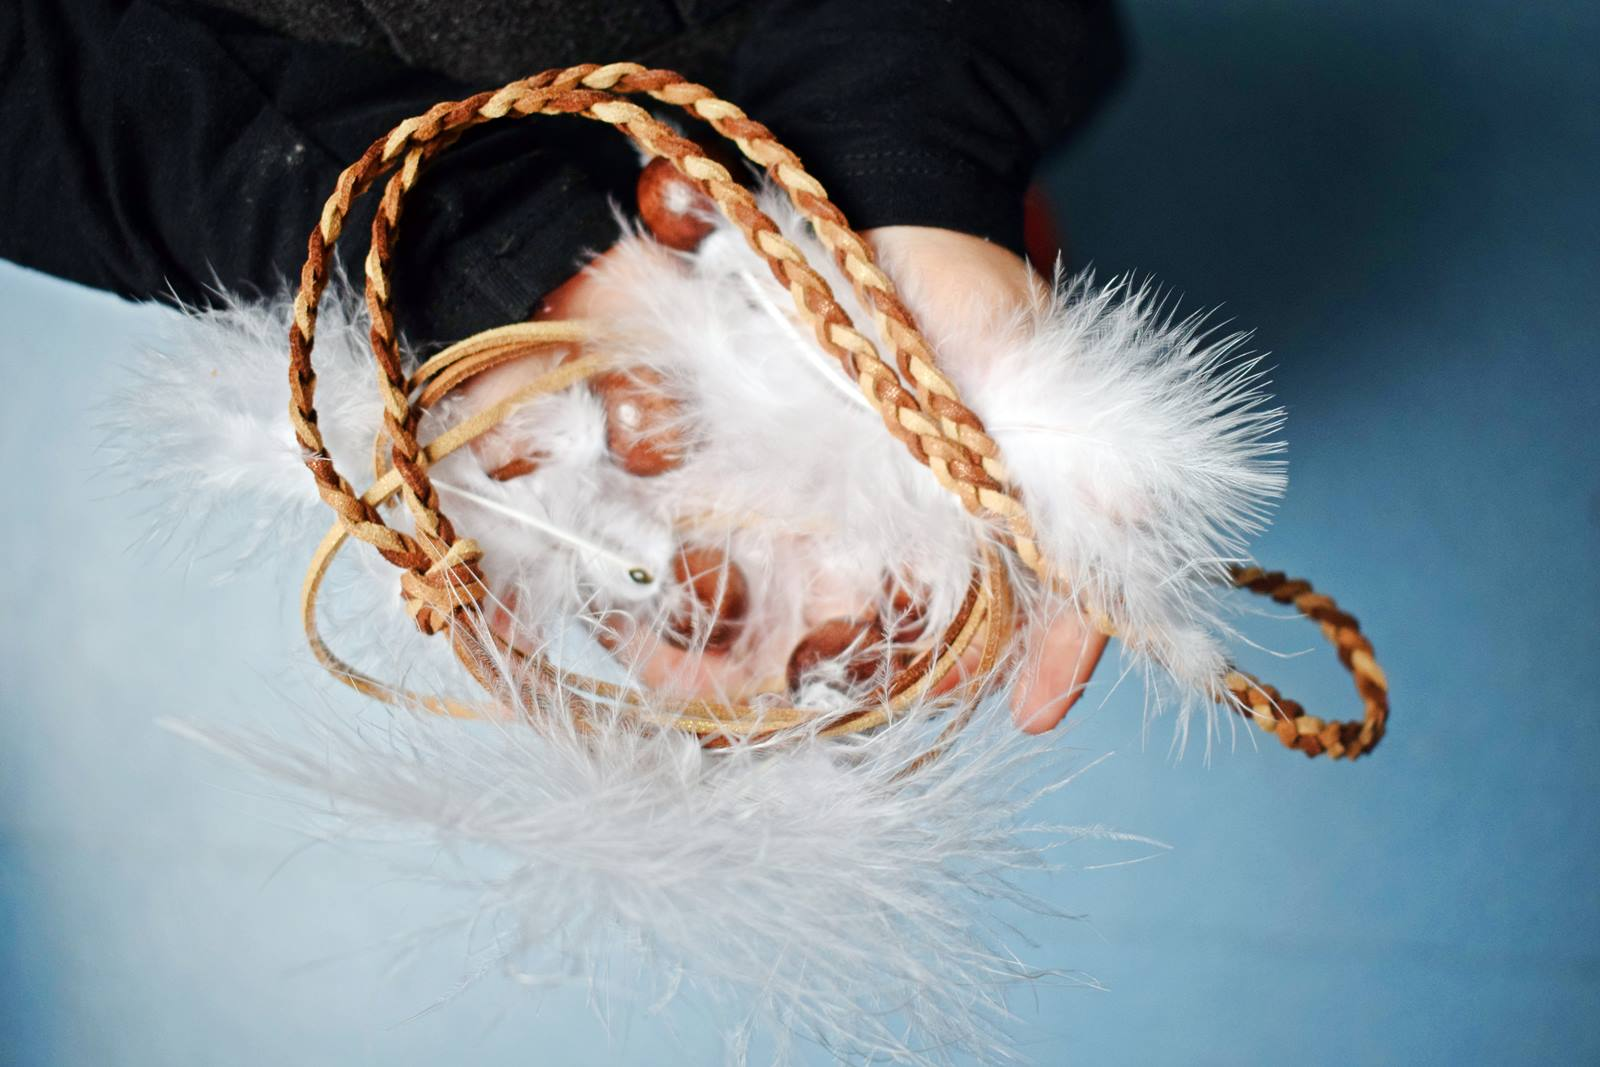 Diy couronne de plumes et de perles our little family le blog 2 bis